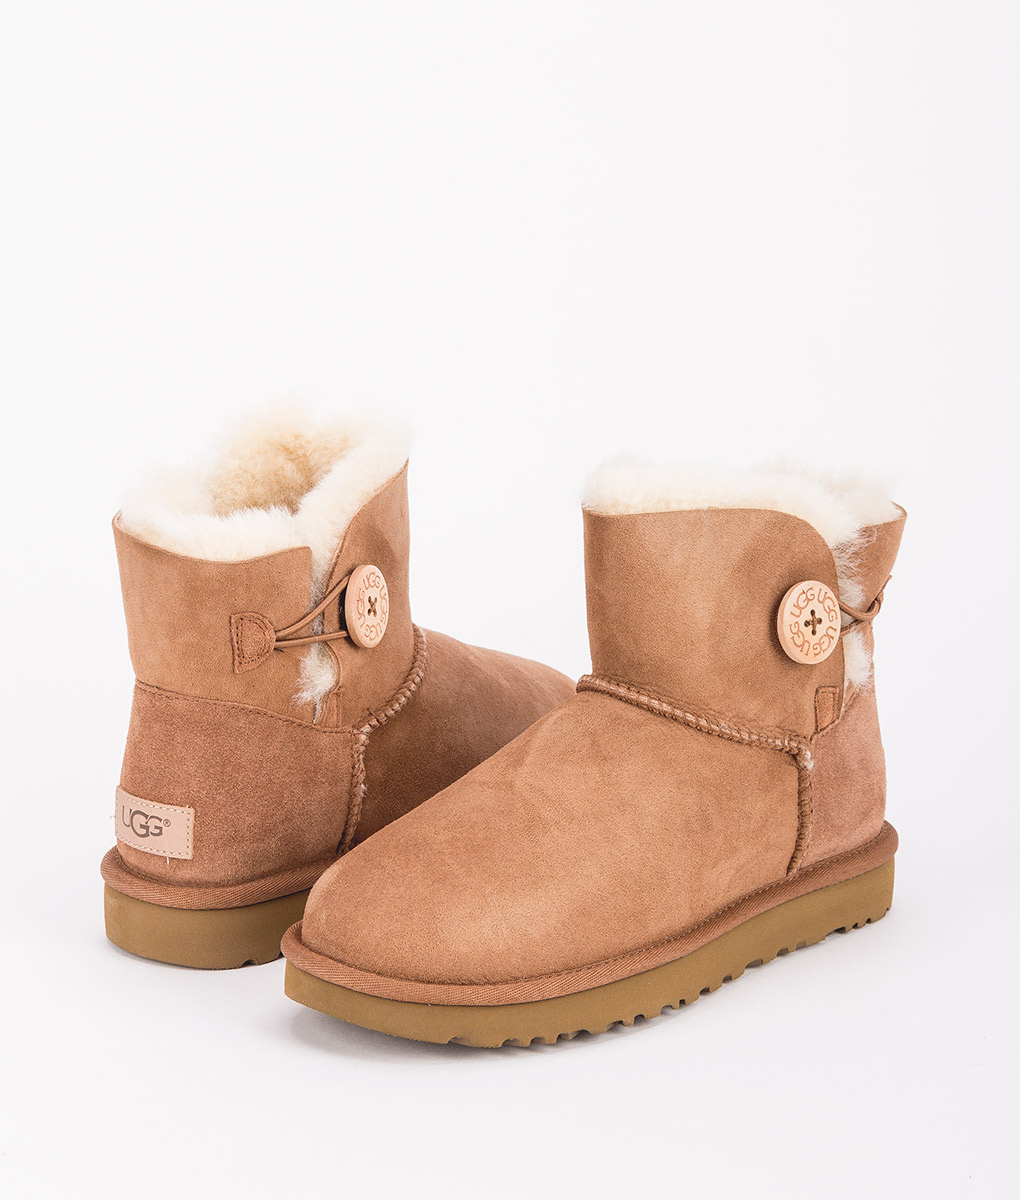 UGG Women Ankle Boots 1016422 MINI BAILEY BUTTON II, Chestnut 1